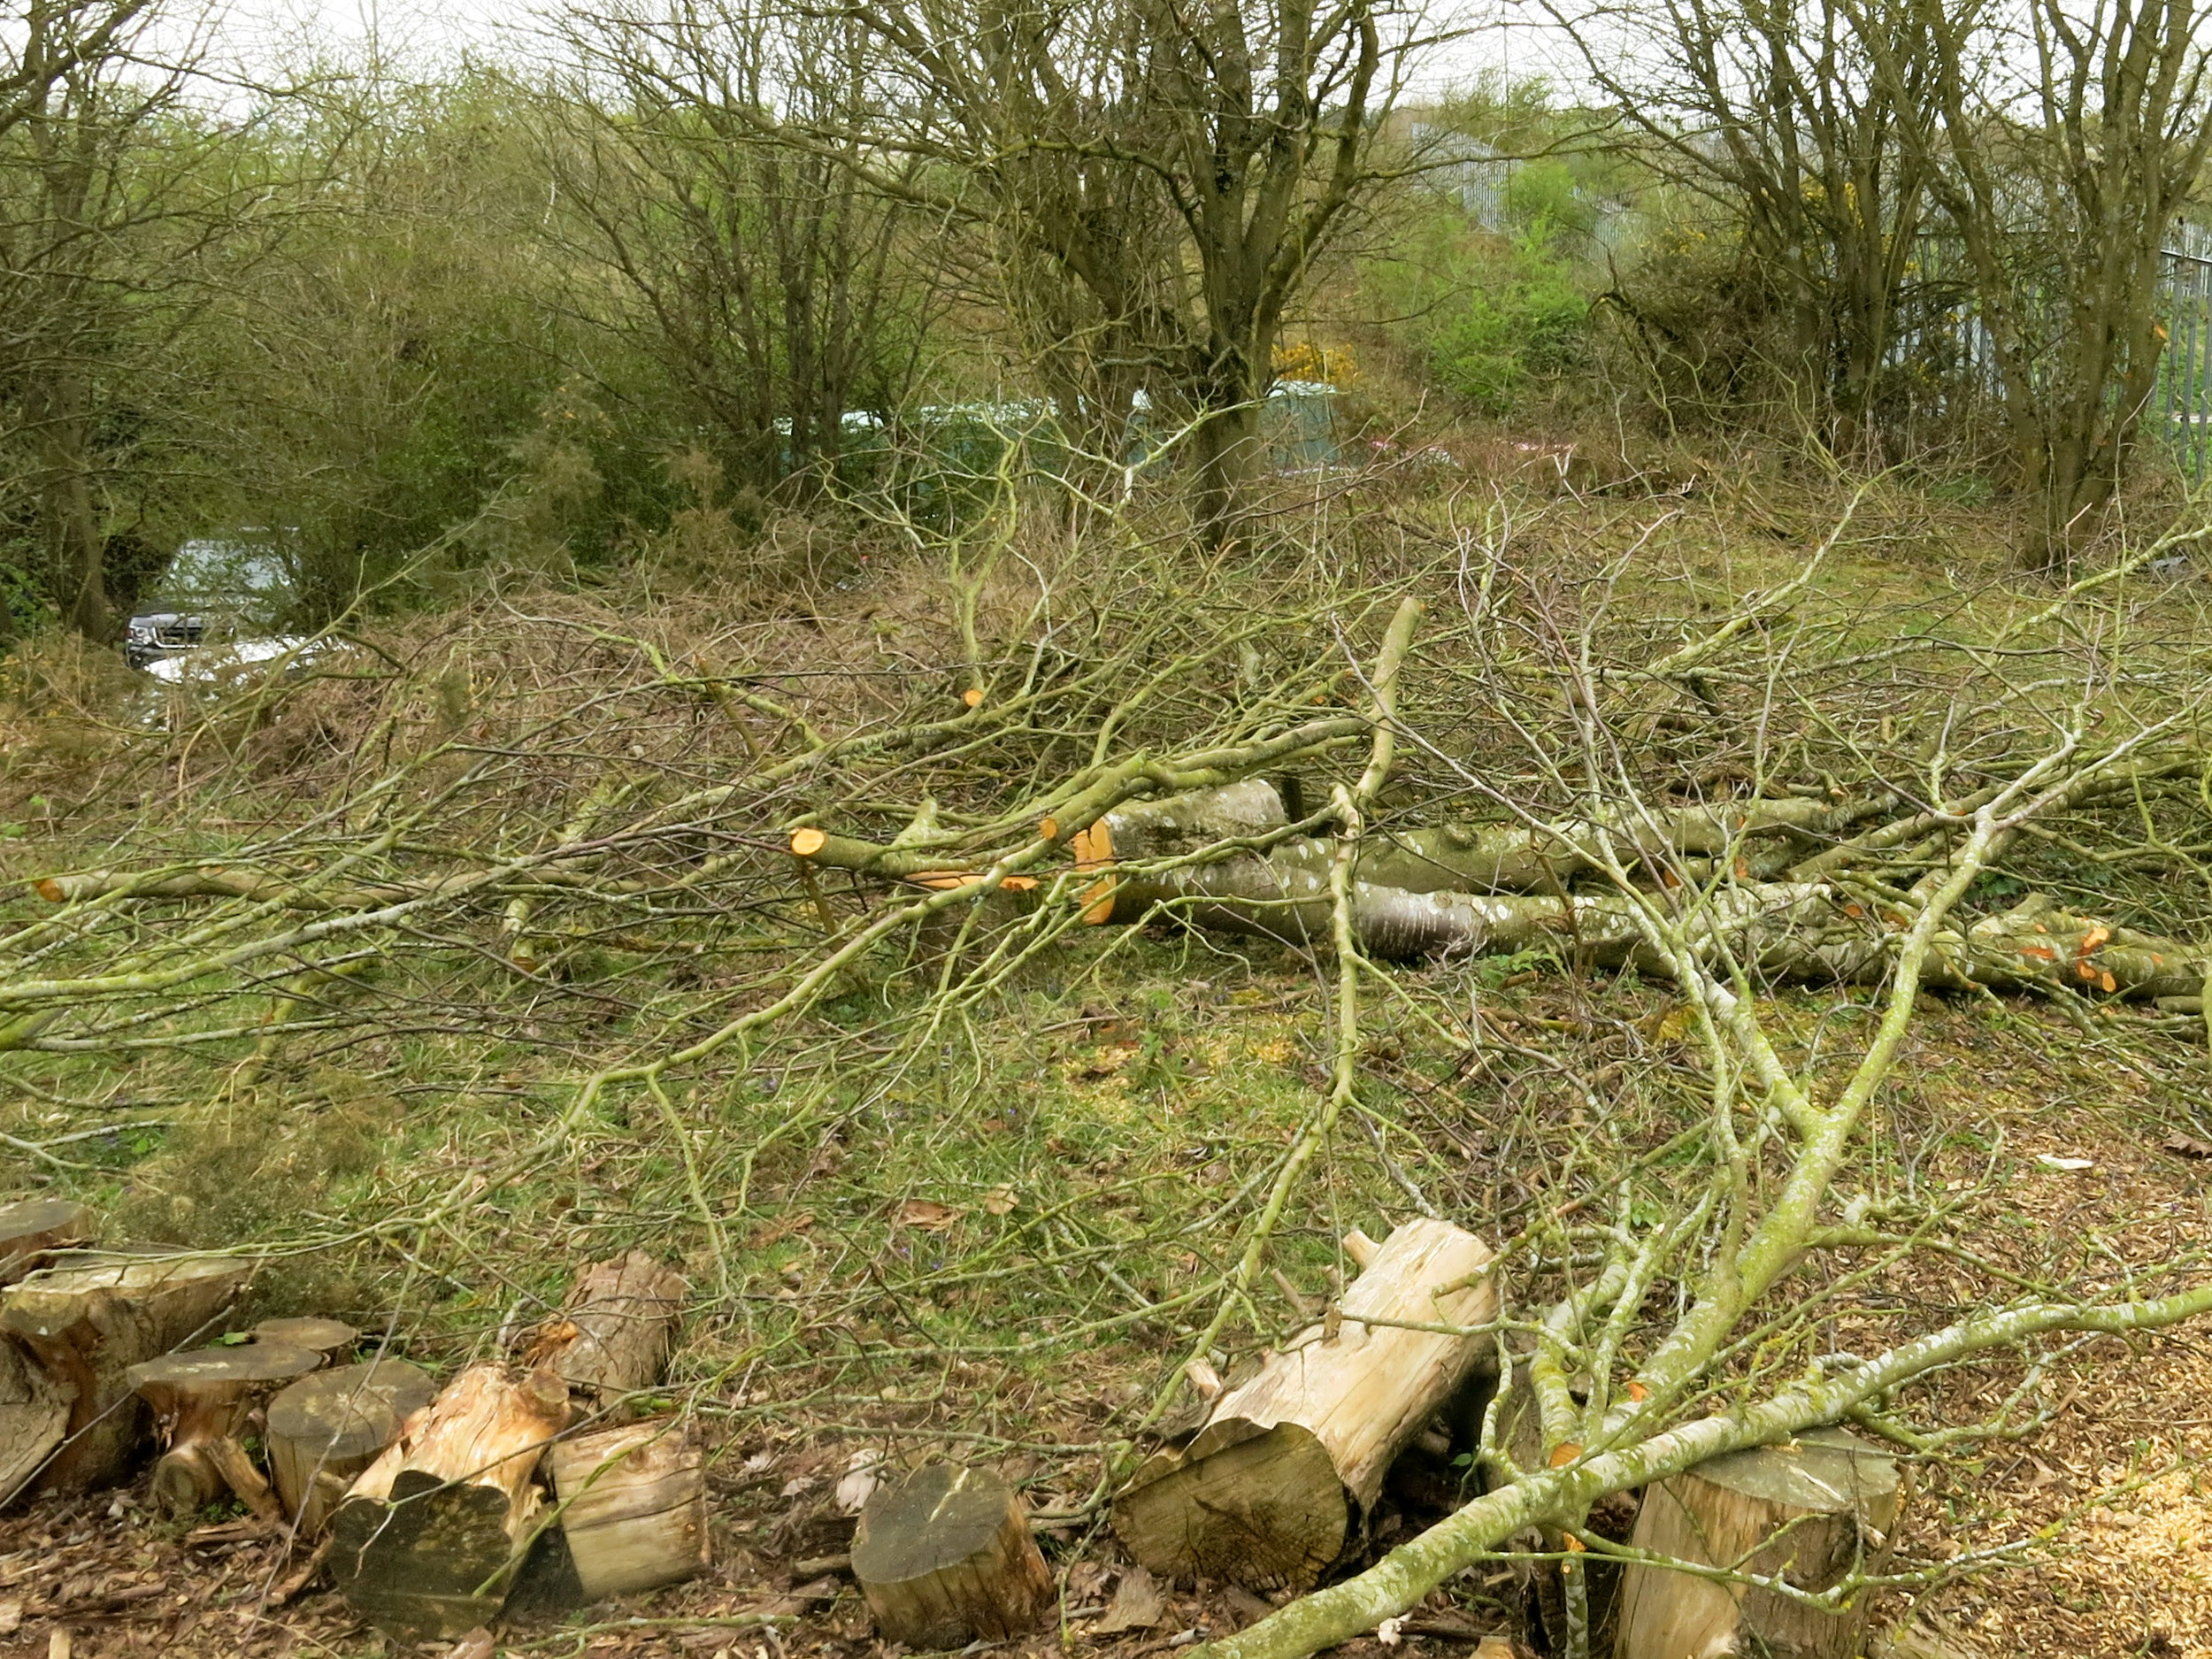 Coppicing of secondary woodland and the generation of brash piles to help encourage the development of woodland flora in the ground layer whilst providing habitat for invertebrates and other species.